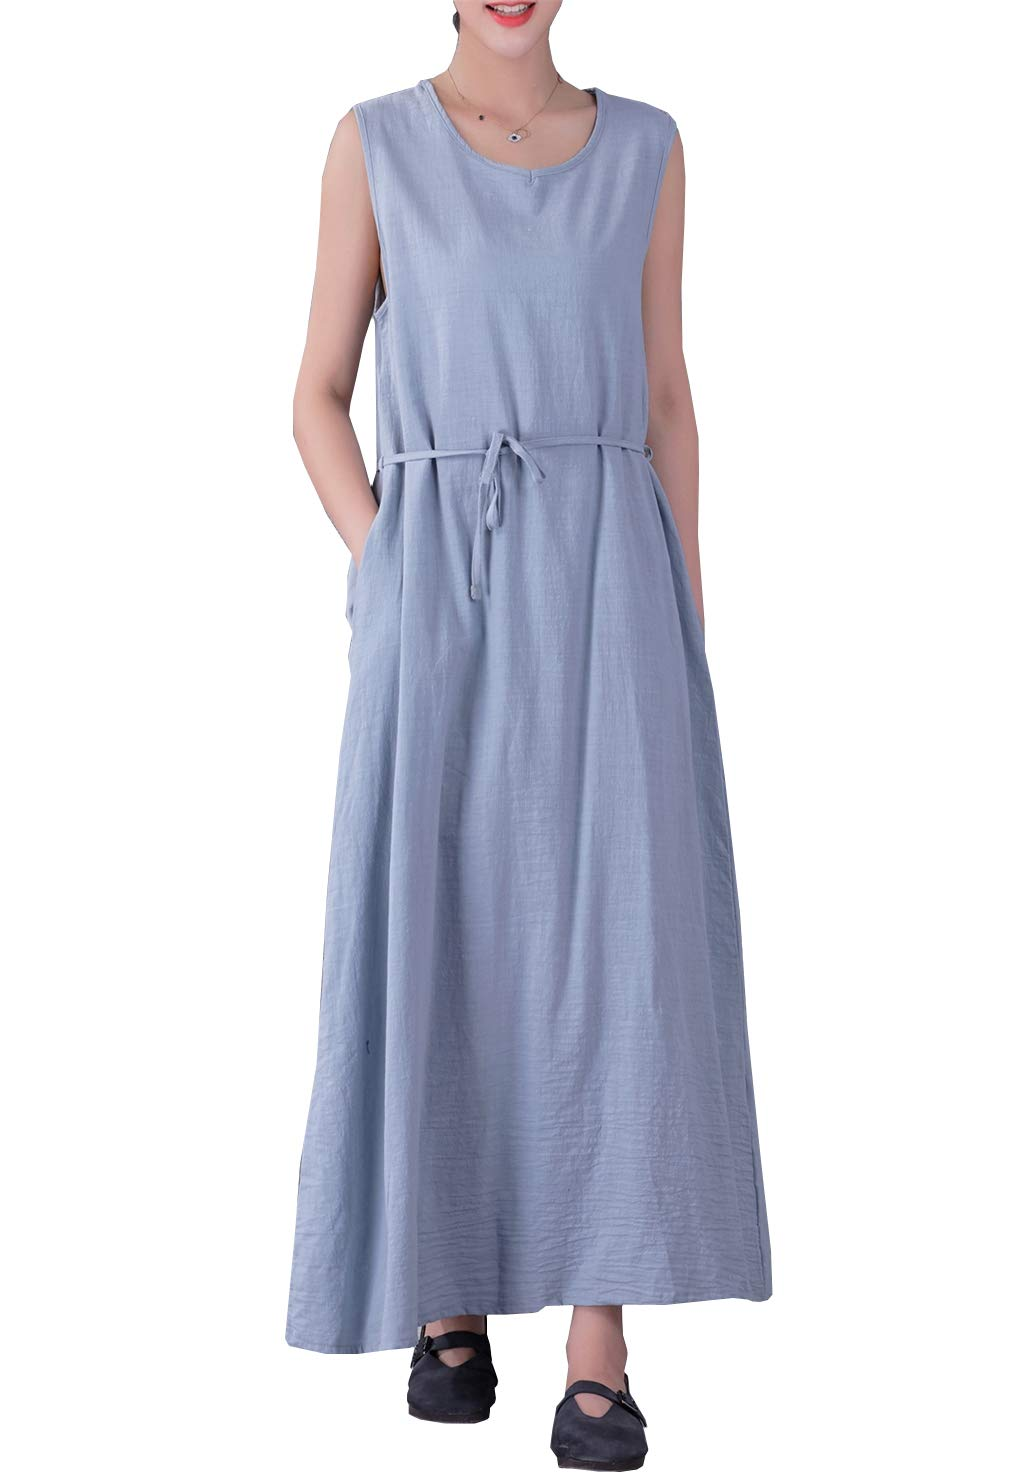 YUHEYUHE Women's Casual Loose Plus Size Summer Sundress Sleeveless Soft Long Maxi Cotton Linen Dress